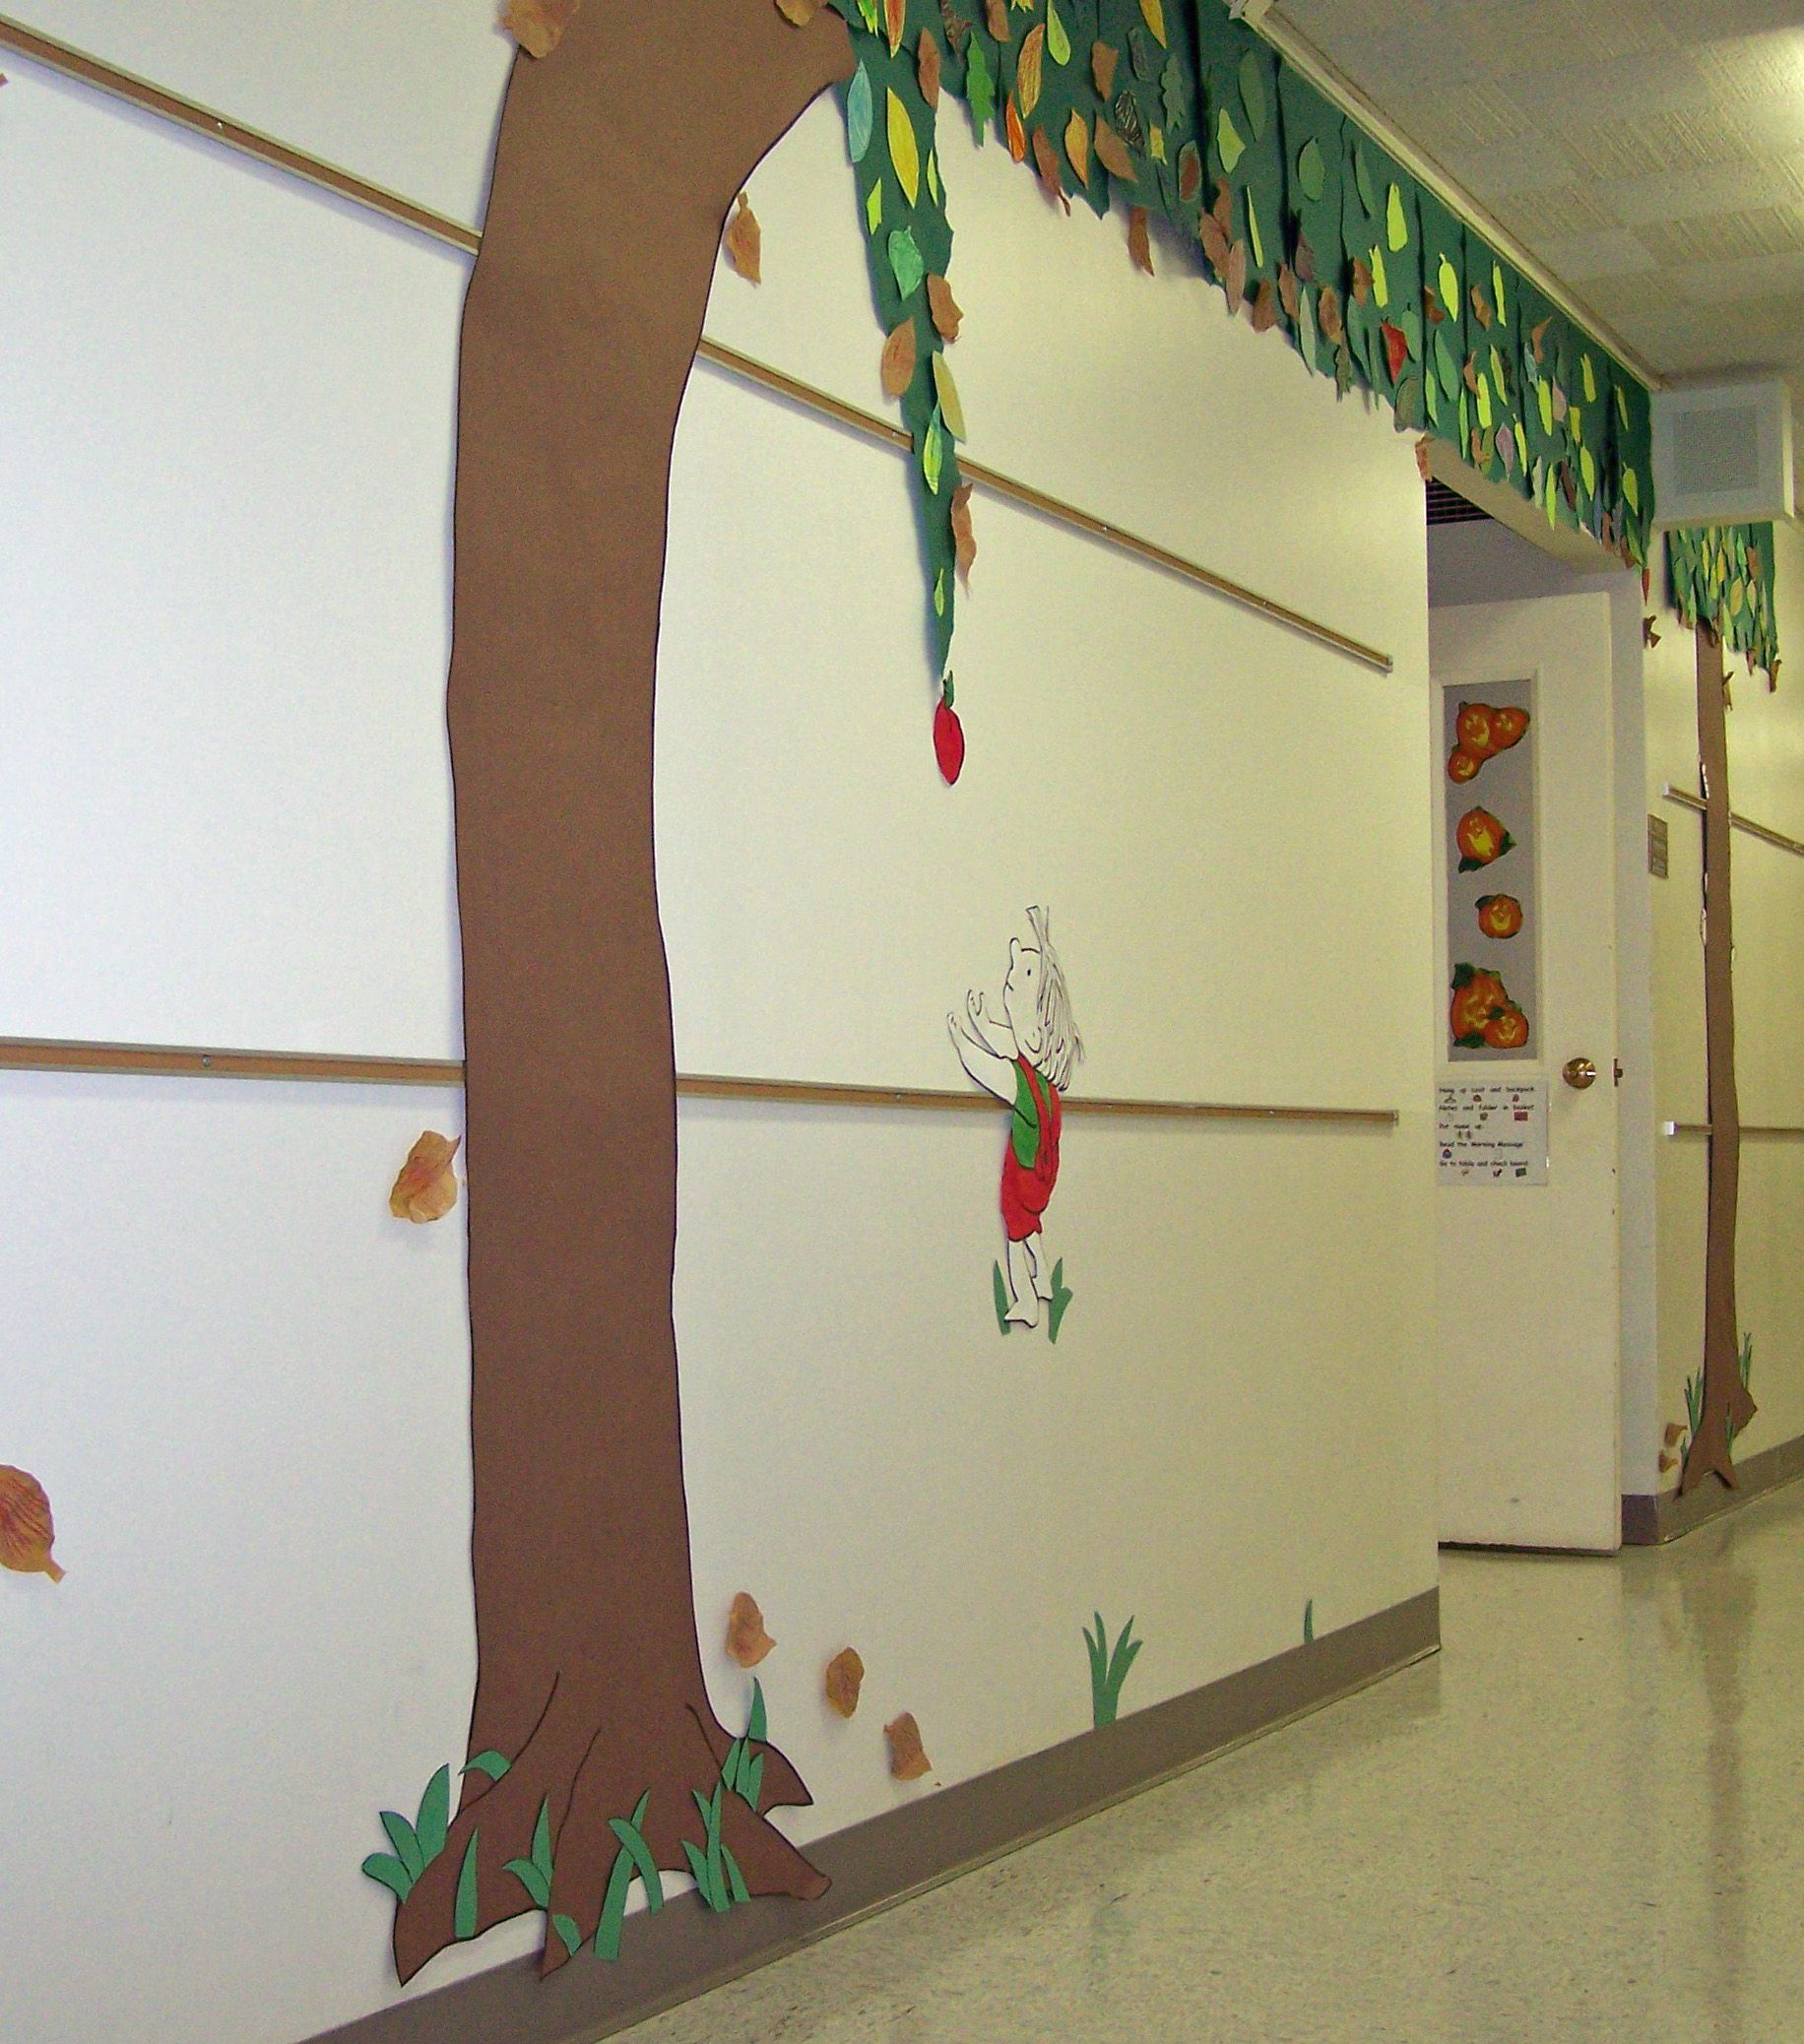 The Giving Tree Mural